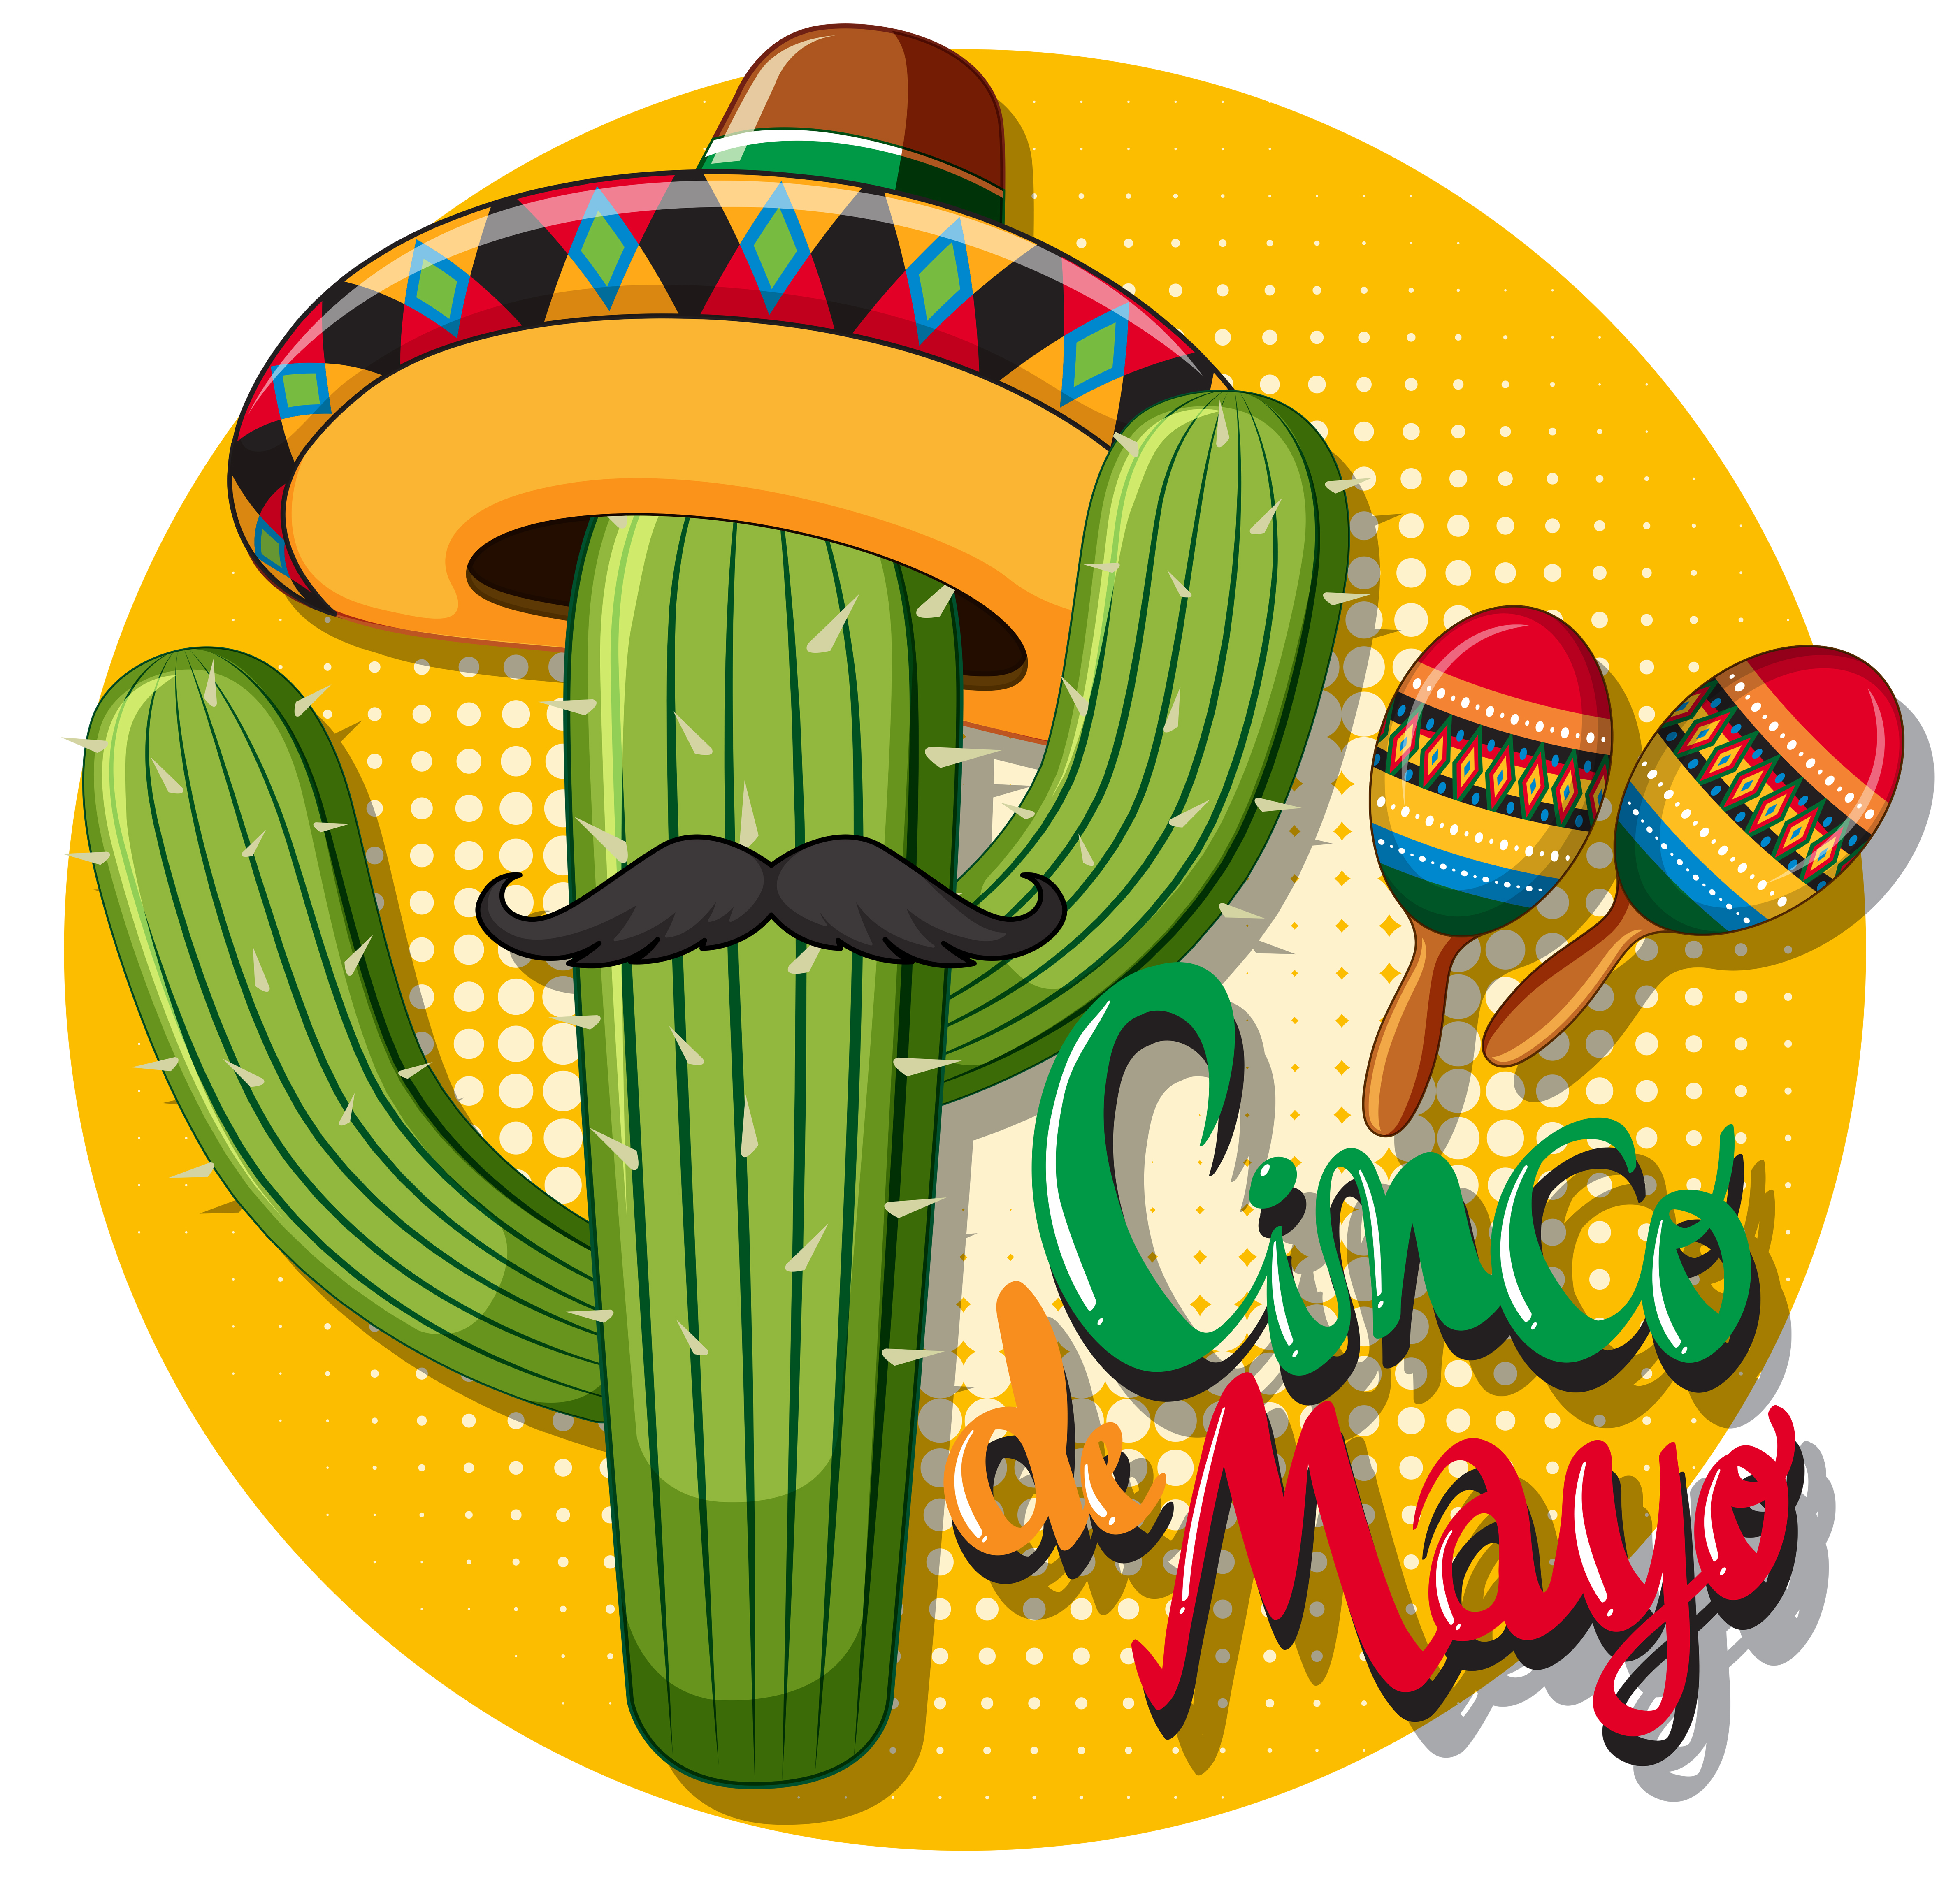 Cinco de mayo card template with cactus wearing hat 447422 ...